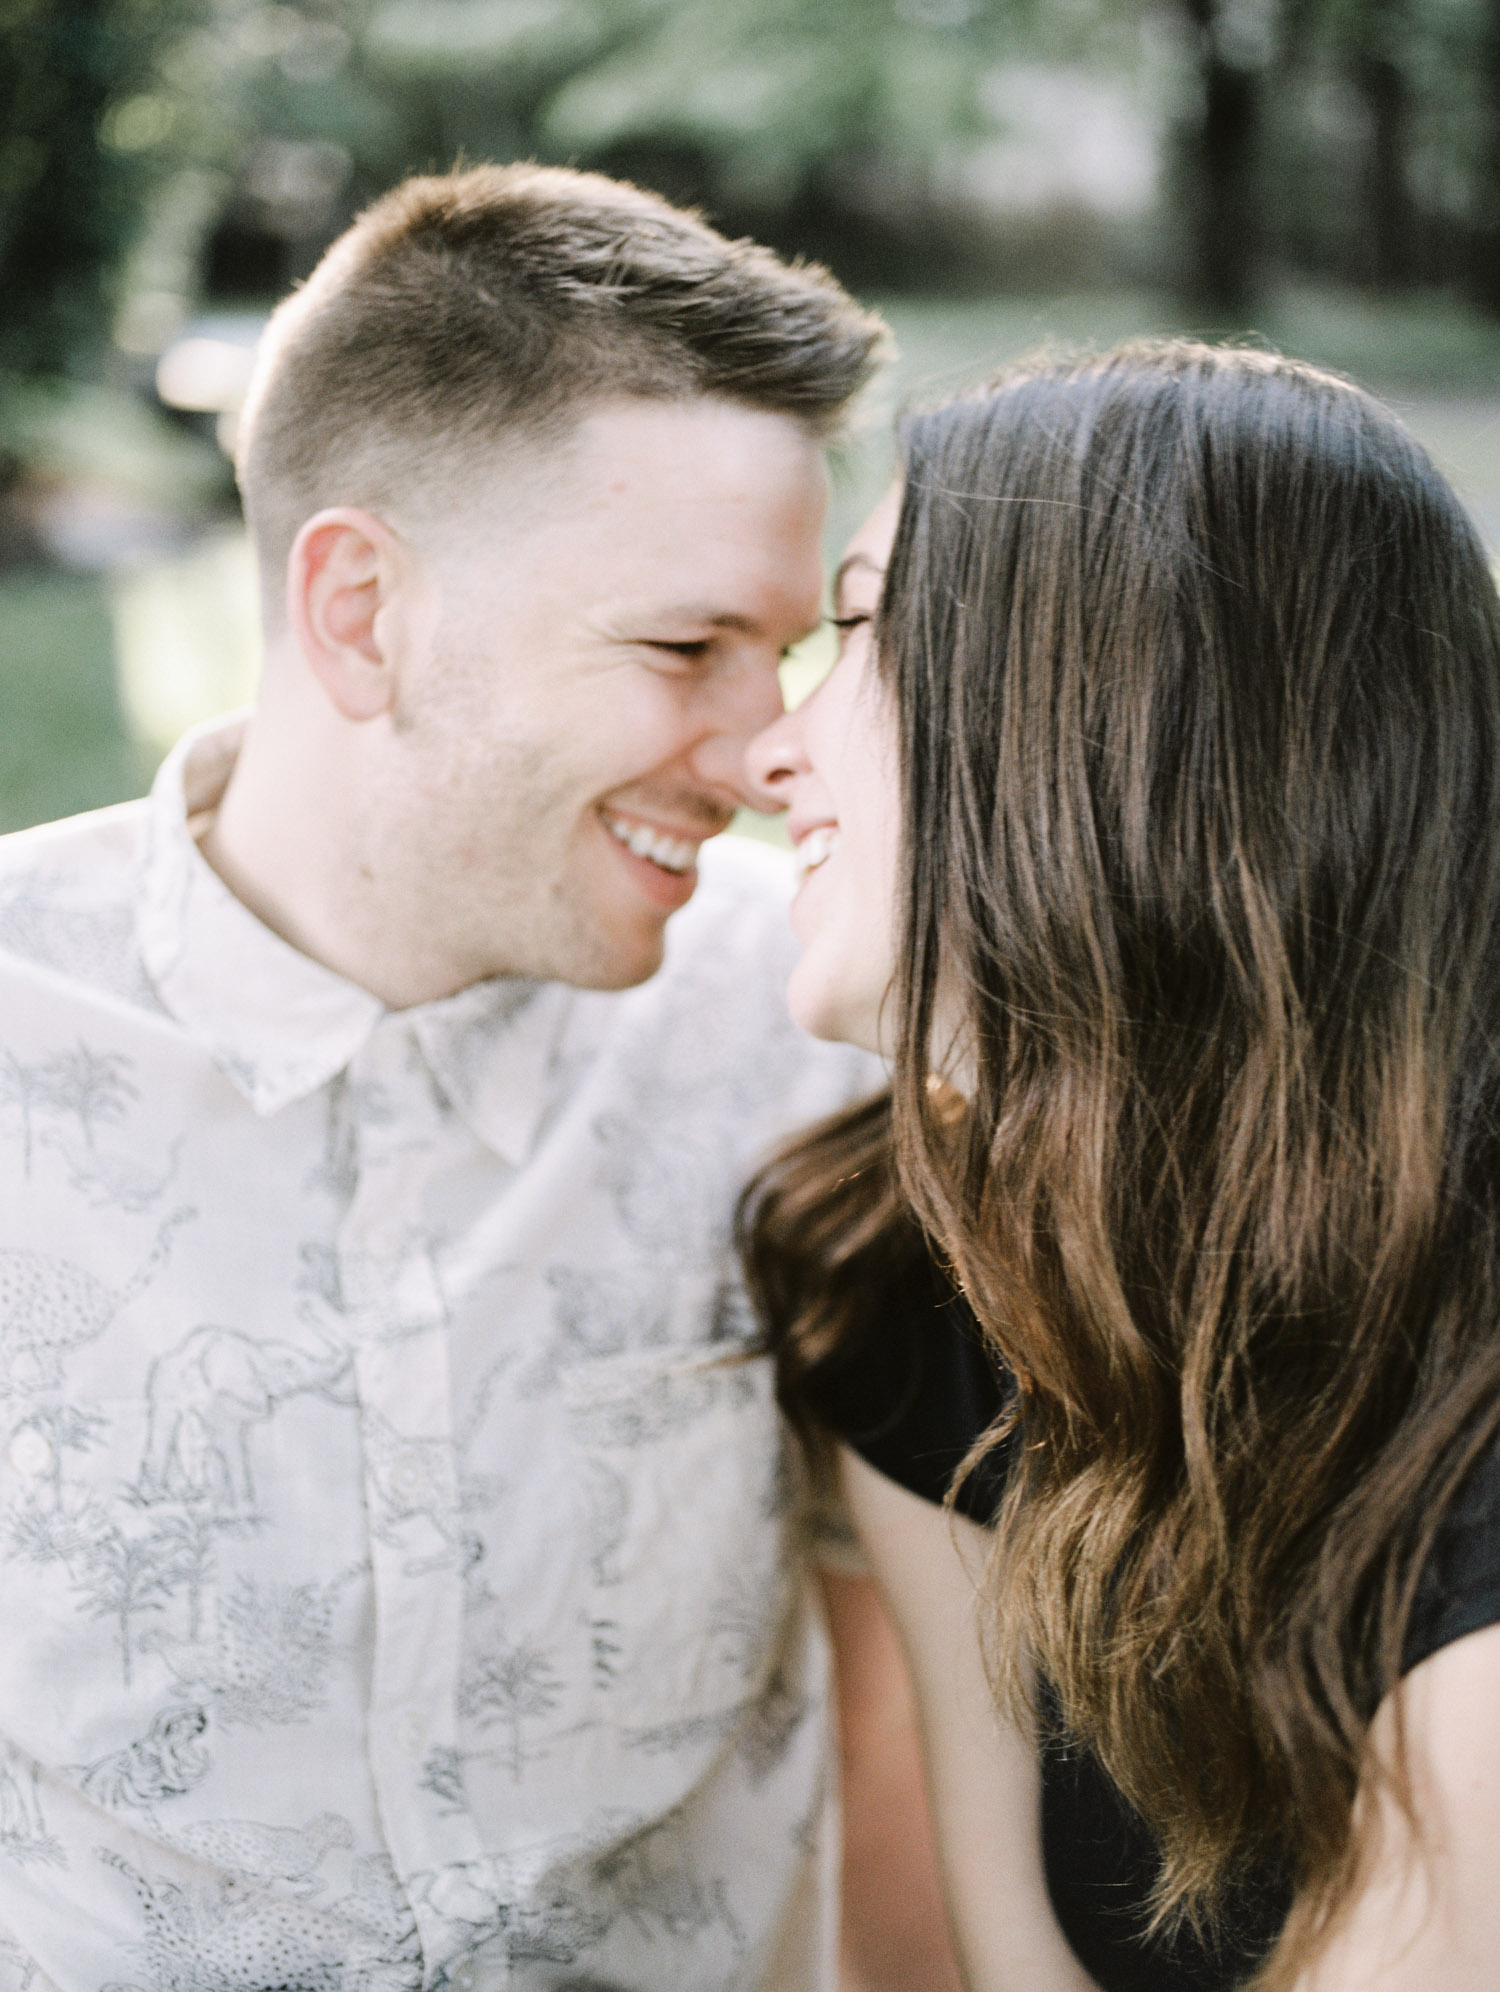 A Detroit couple shares a laugh together in a close up photo during their at home session